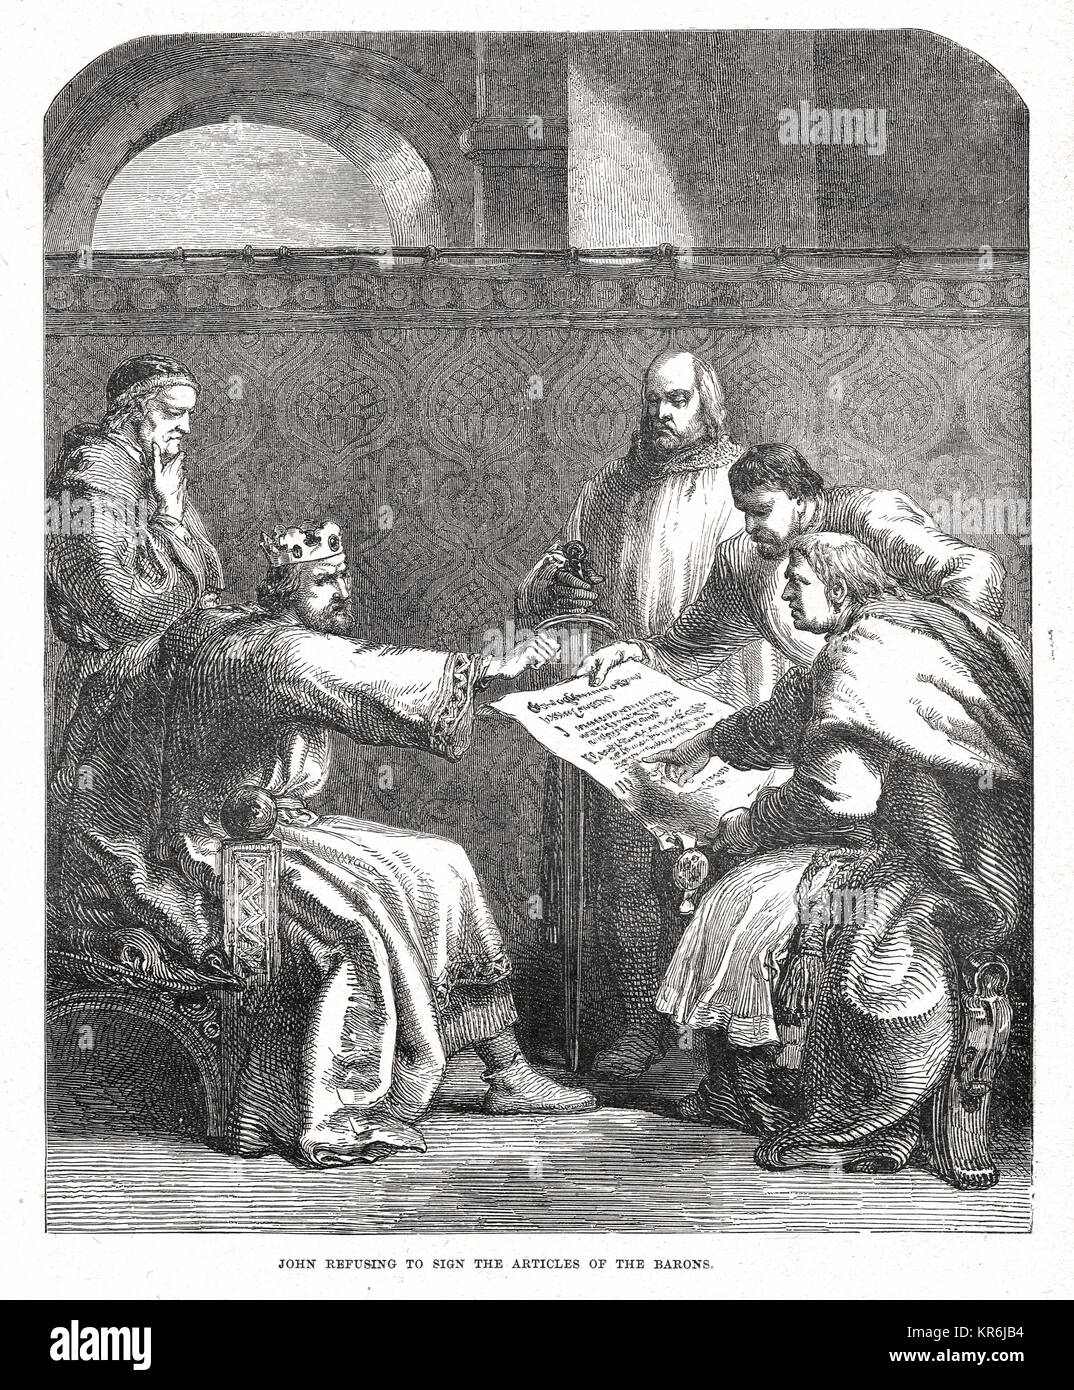 King John refusing to sign the articles of the Barons, Easter 1215, Oxford - Stock Image